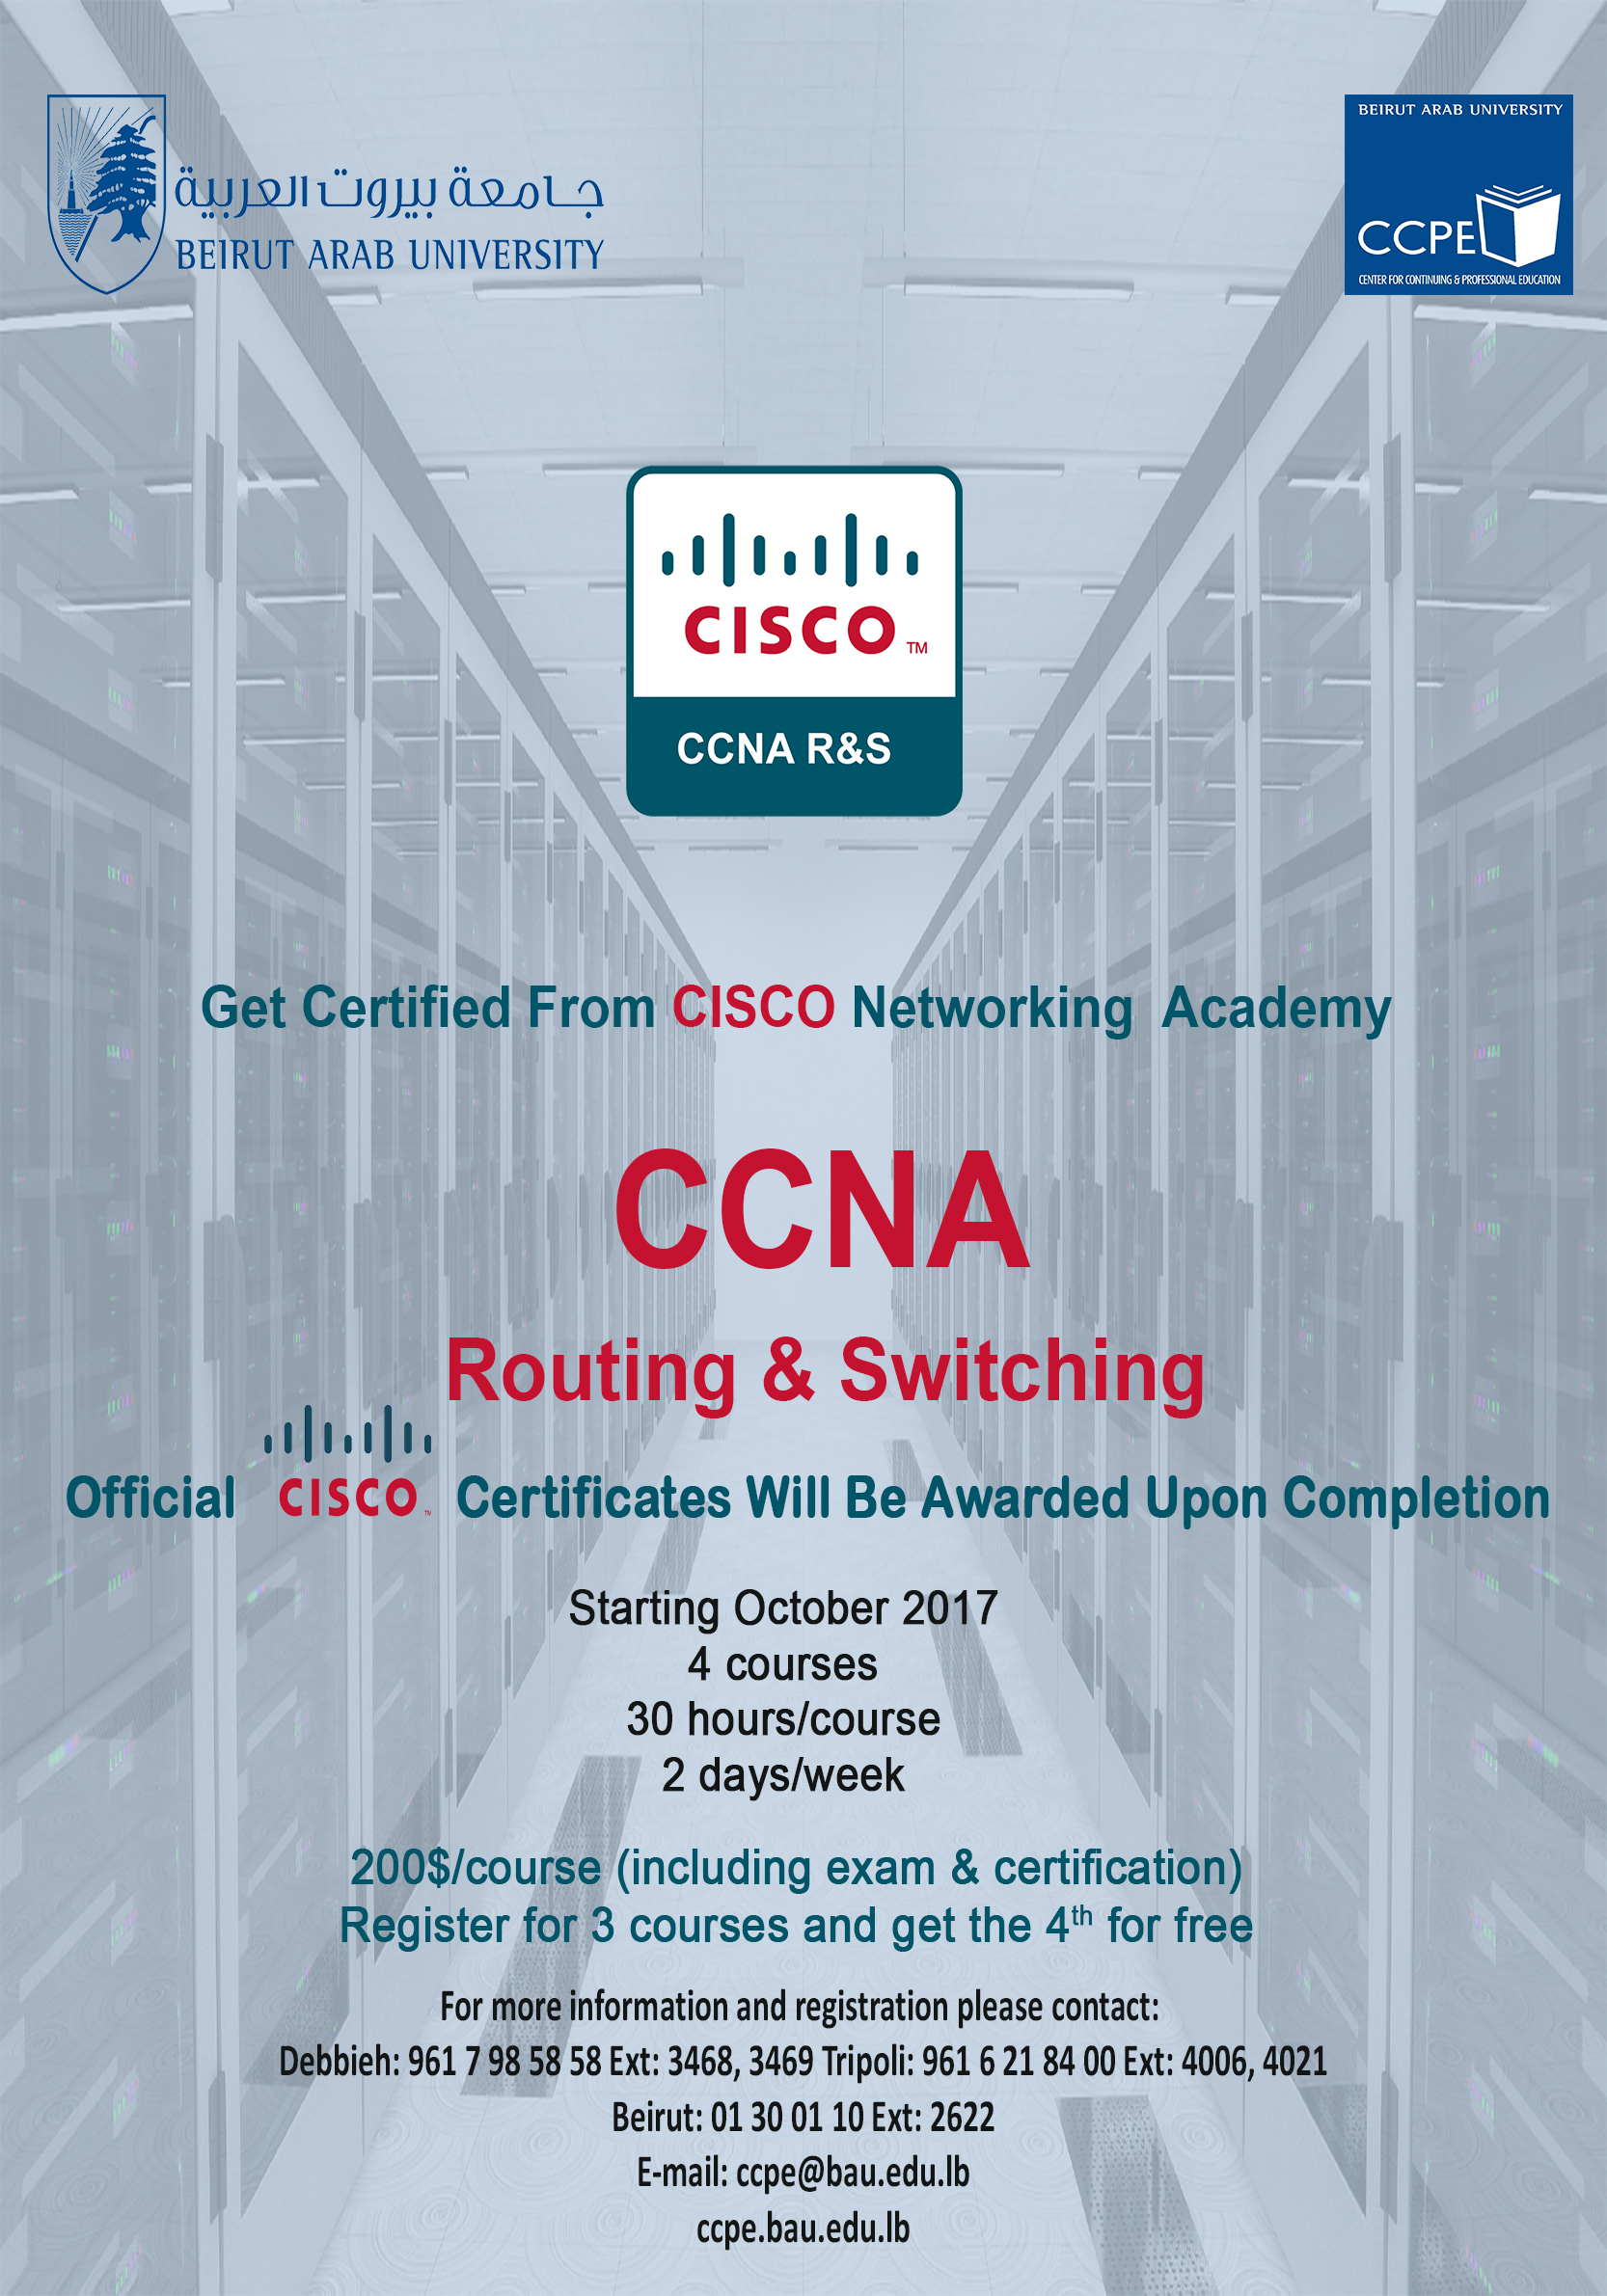 CCNA (Cisco Certified Network Associsate)